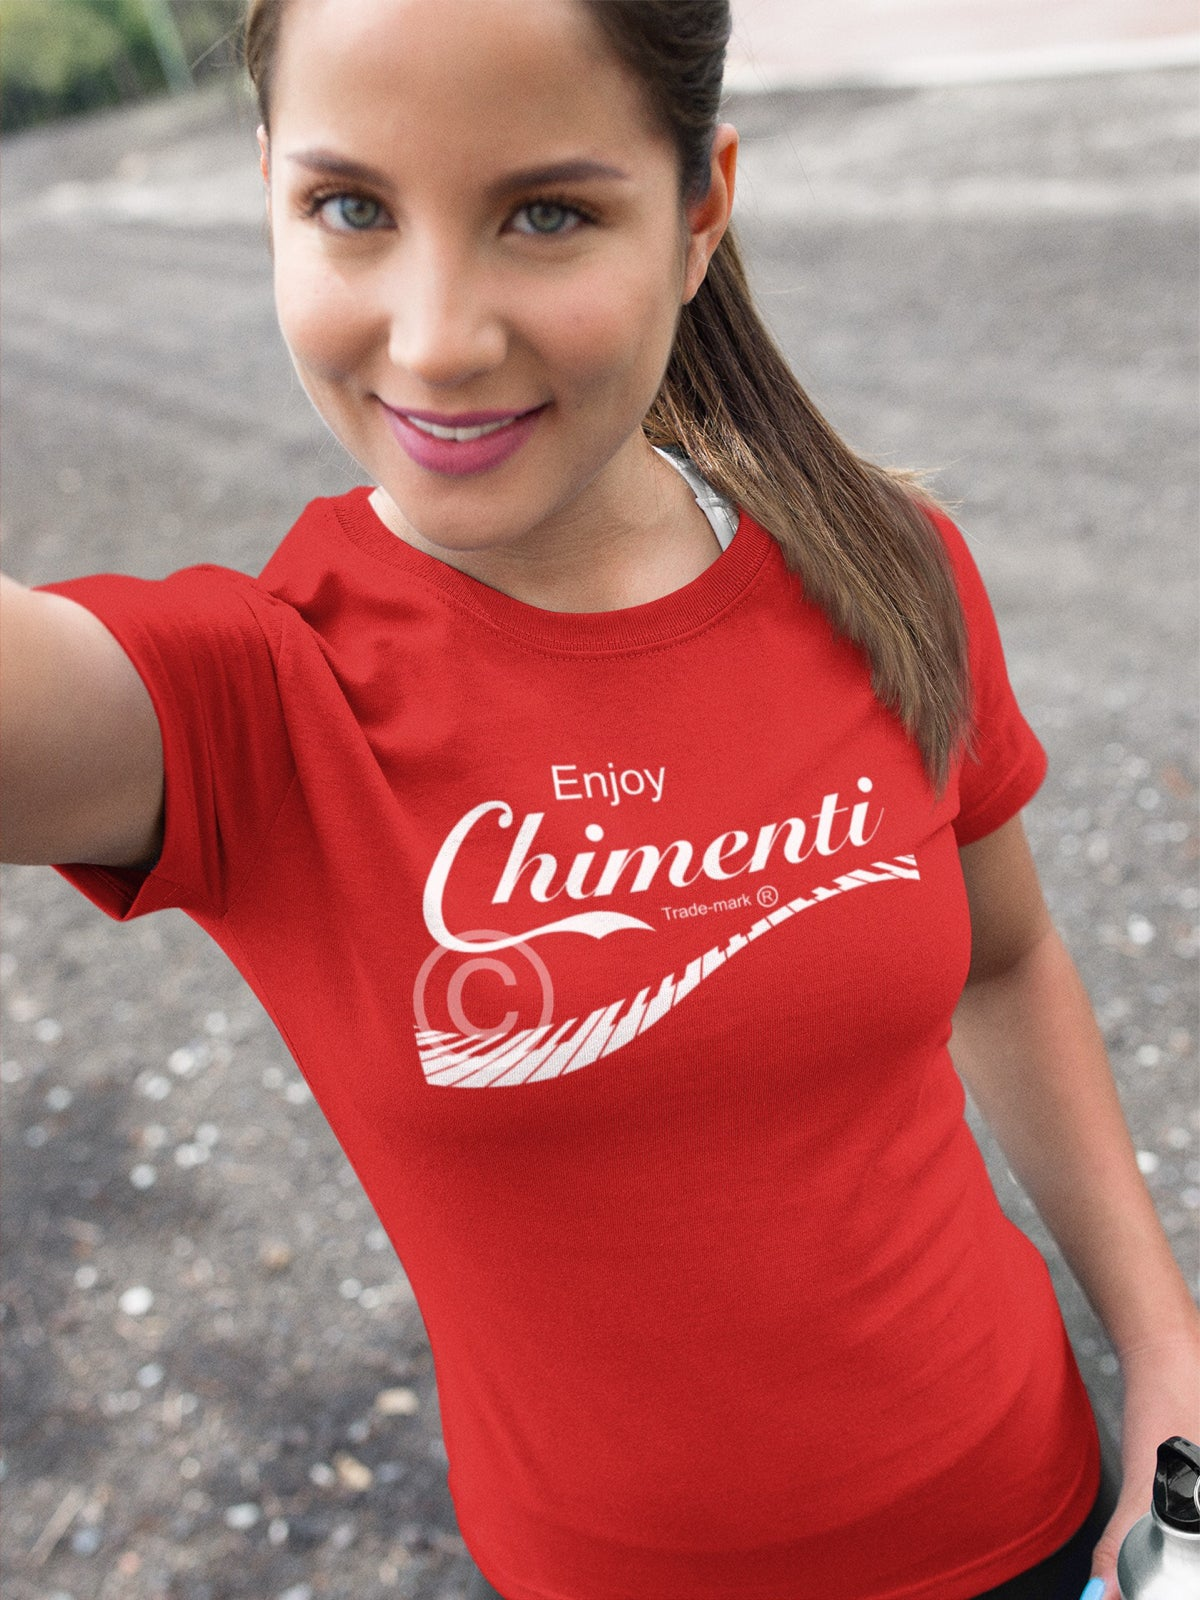 Enjoy Chimenti Tee!